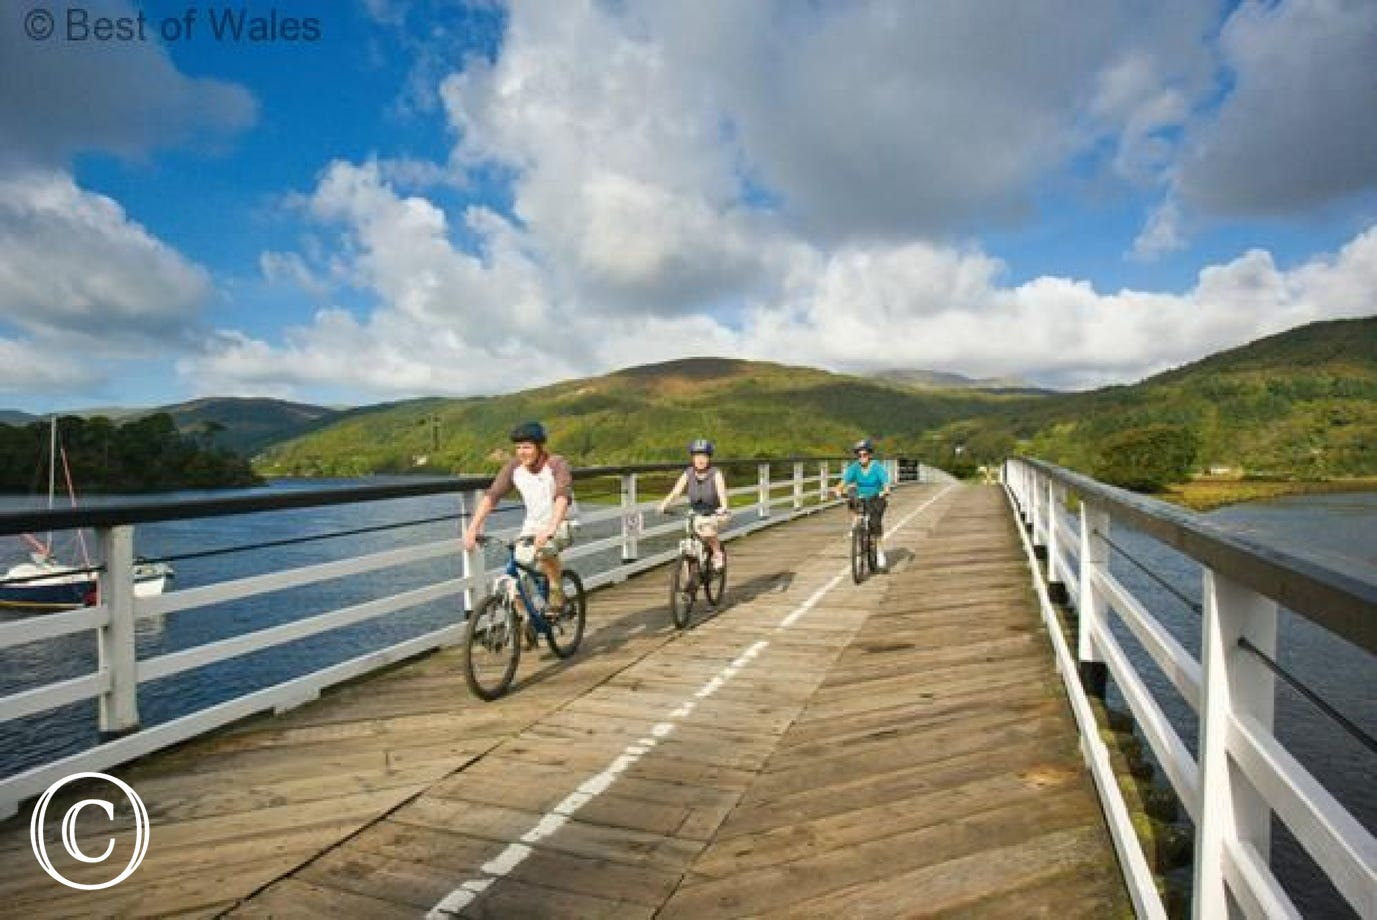 Walk or cycle the Mawddach Trail from Dolgellau to Barmouth